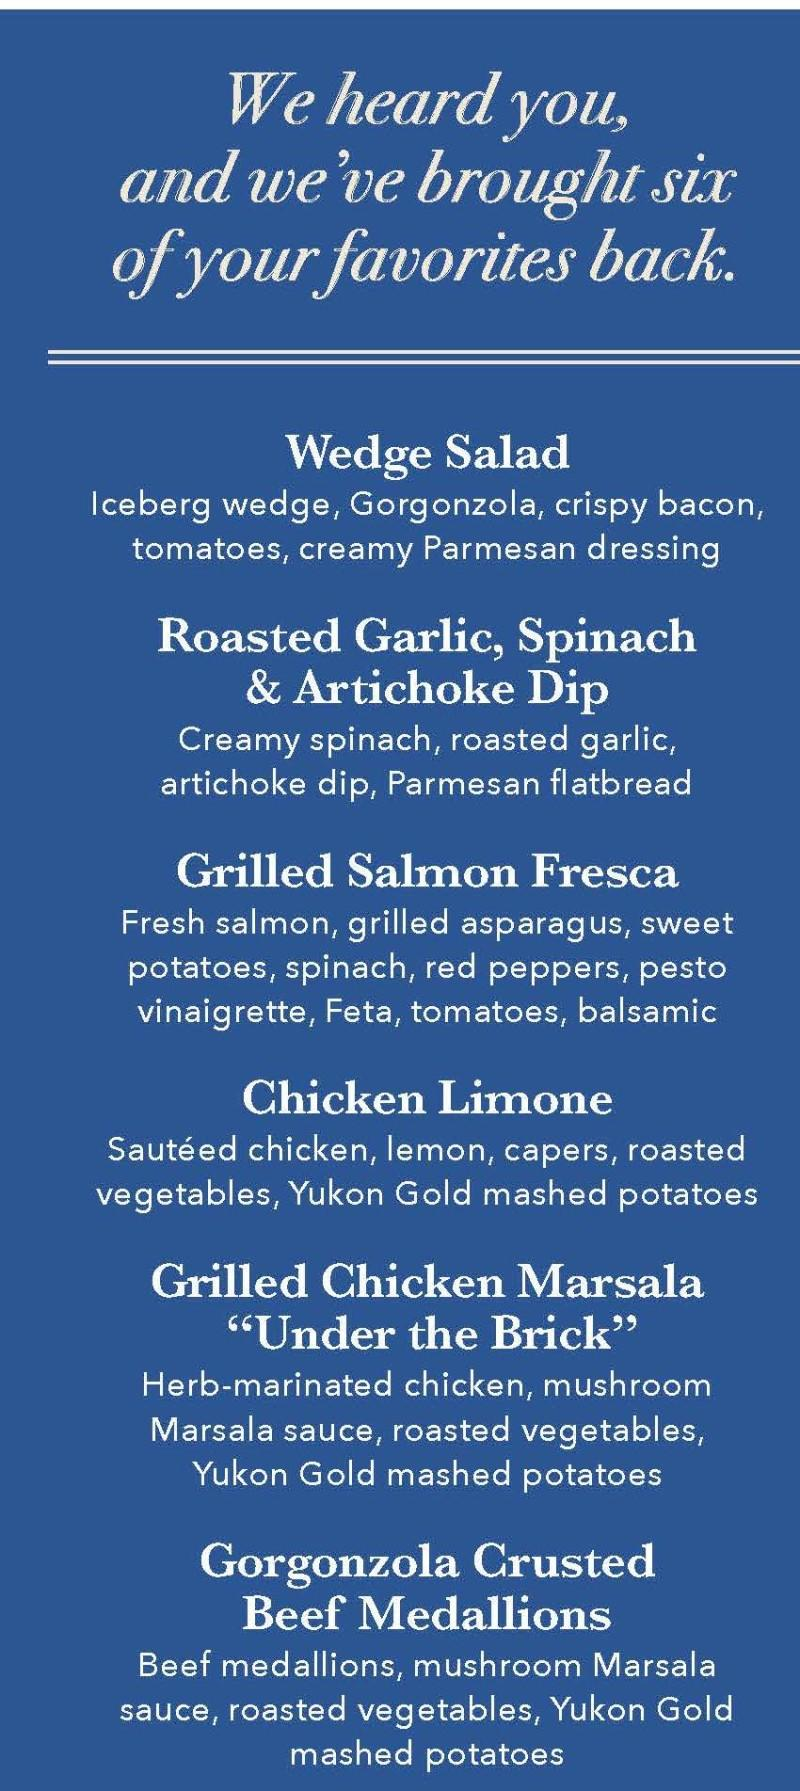 Guest Favorites are back at Brio! from Brio Tuscan Grille